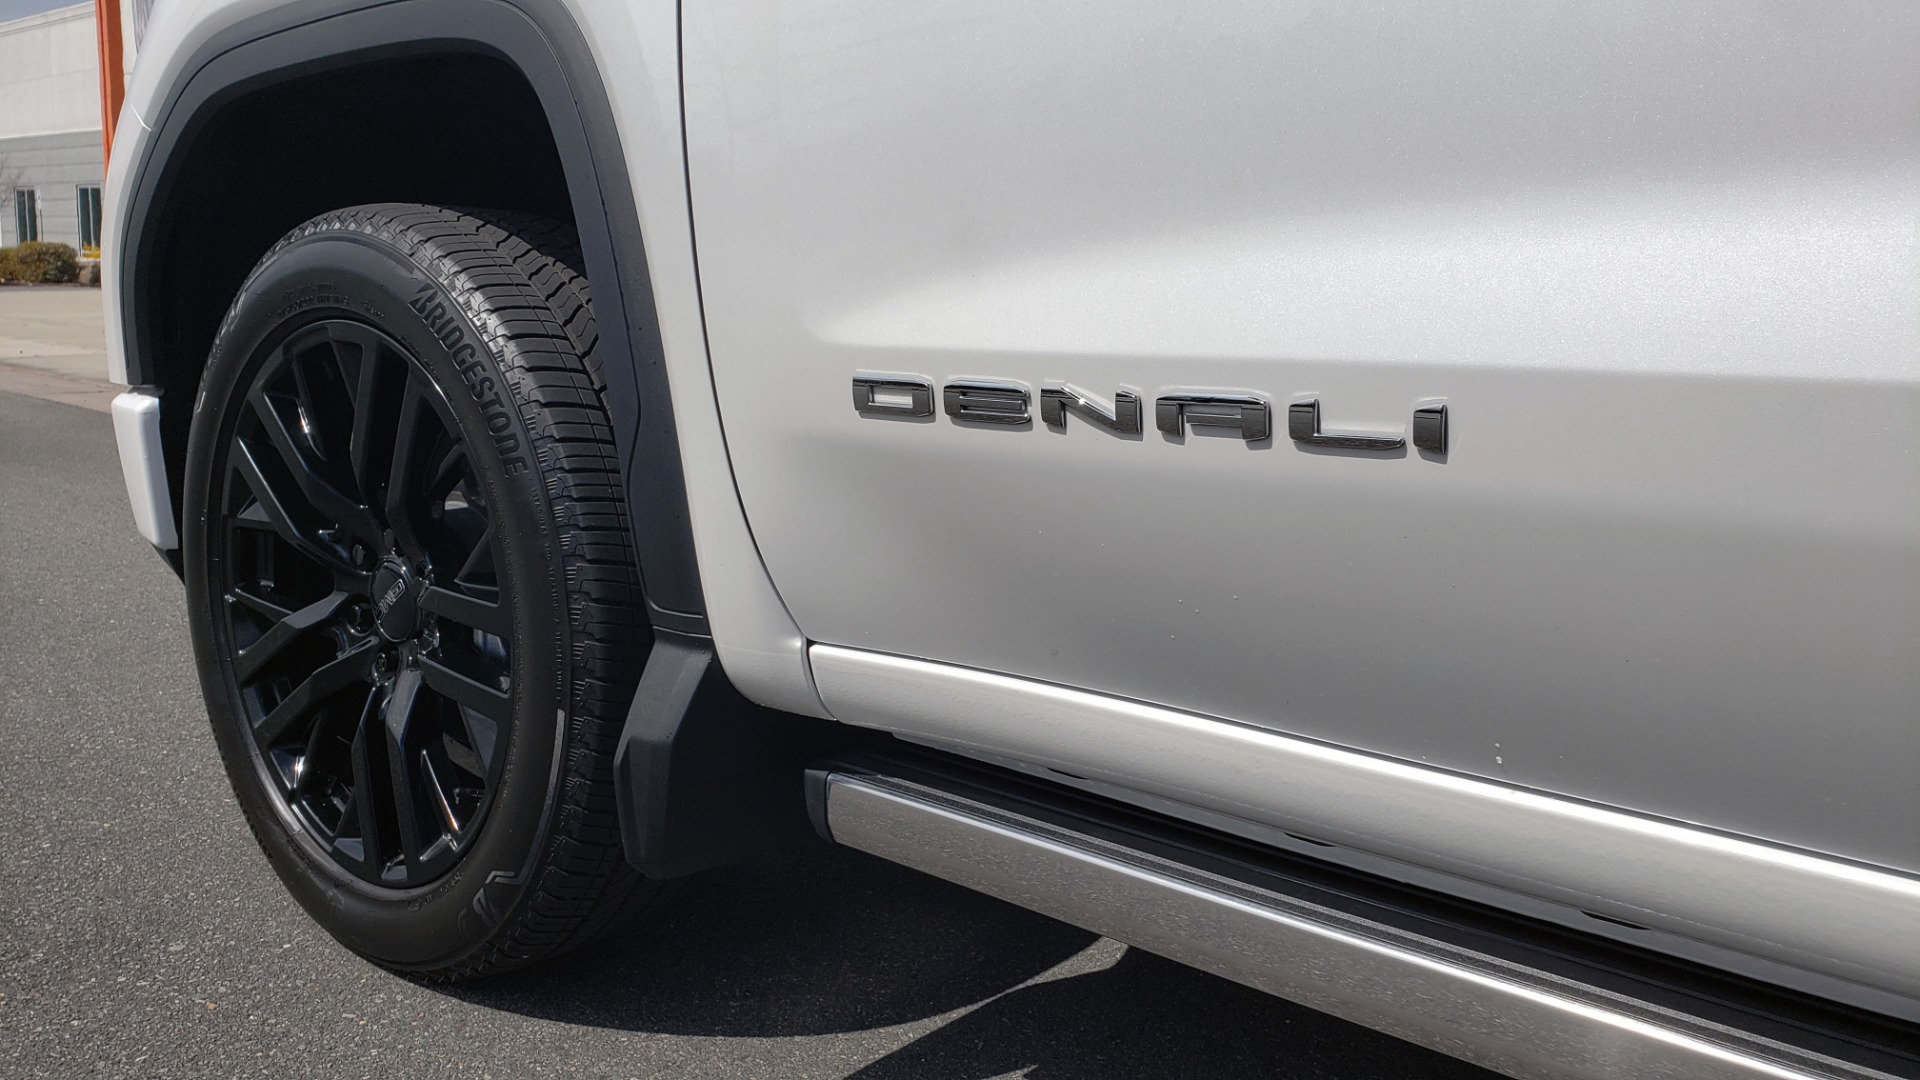 Used 2020 GMC SIERRA 1500 DENALI 4X4 CREWCAB 6.2L V8 / TECH / NAV / SUNROOF / DRVR ALERT II for sale Sold at Formula Imports in Charlotte NC 28227 10